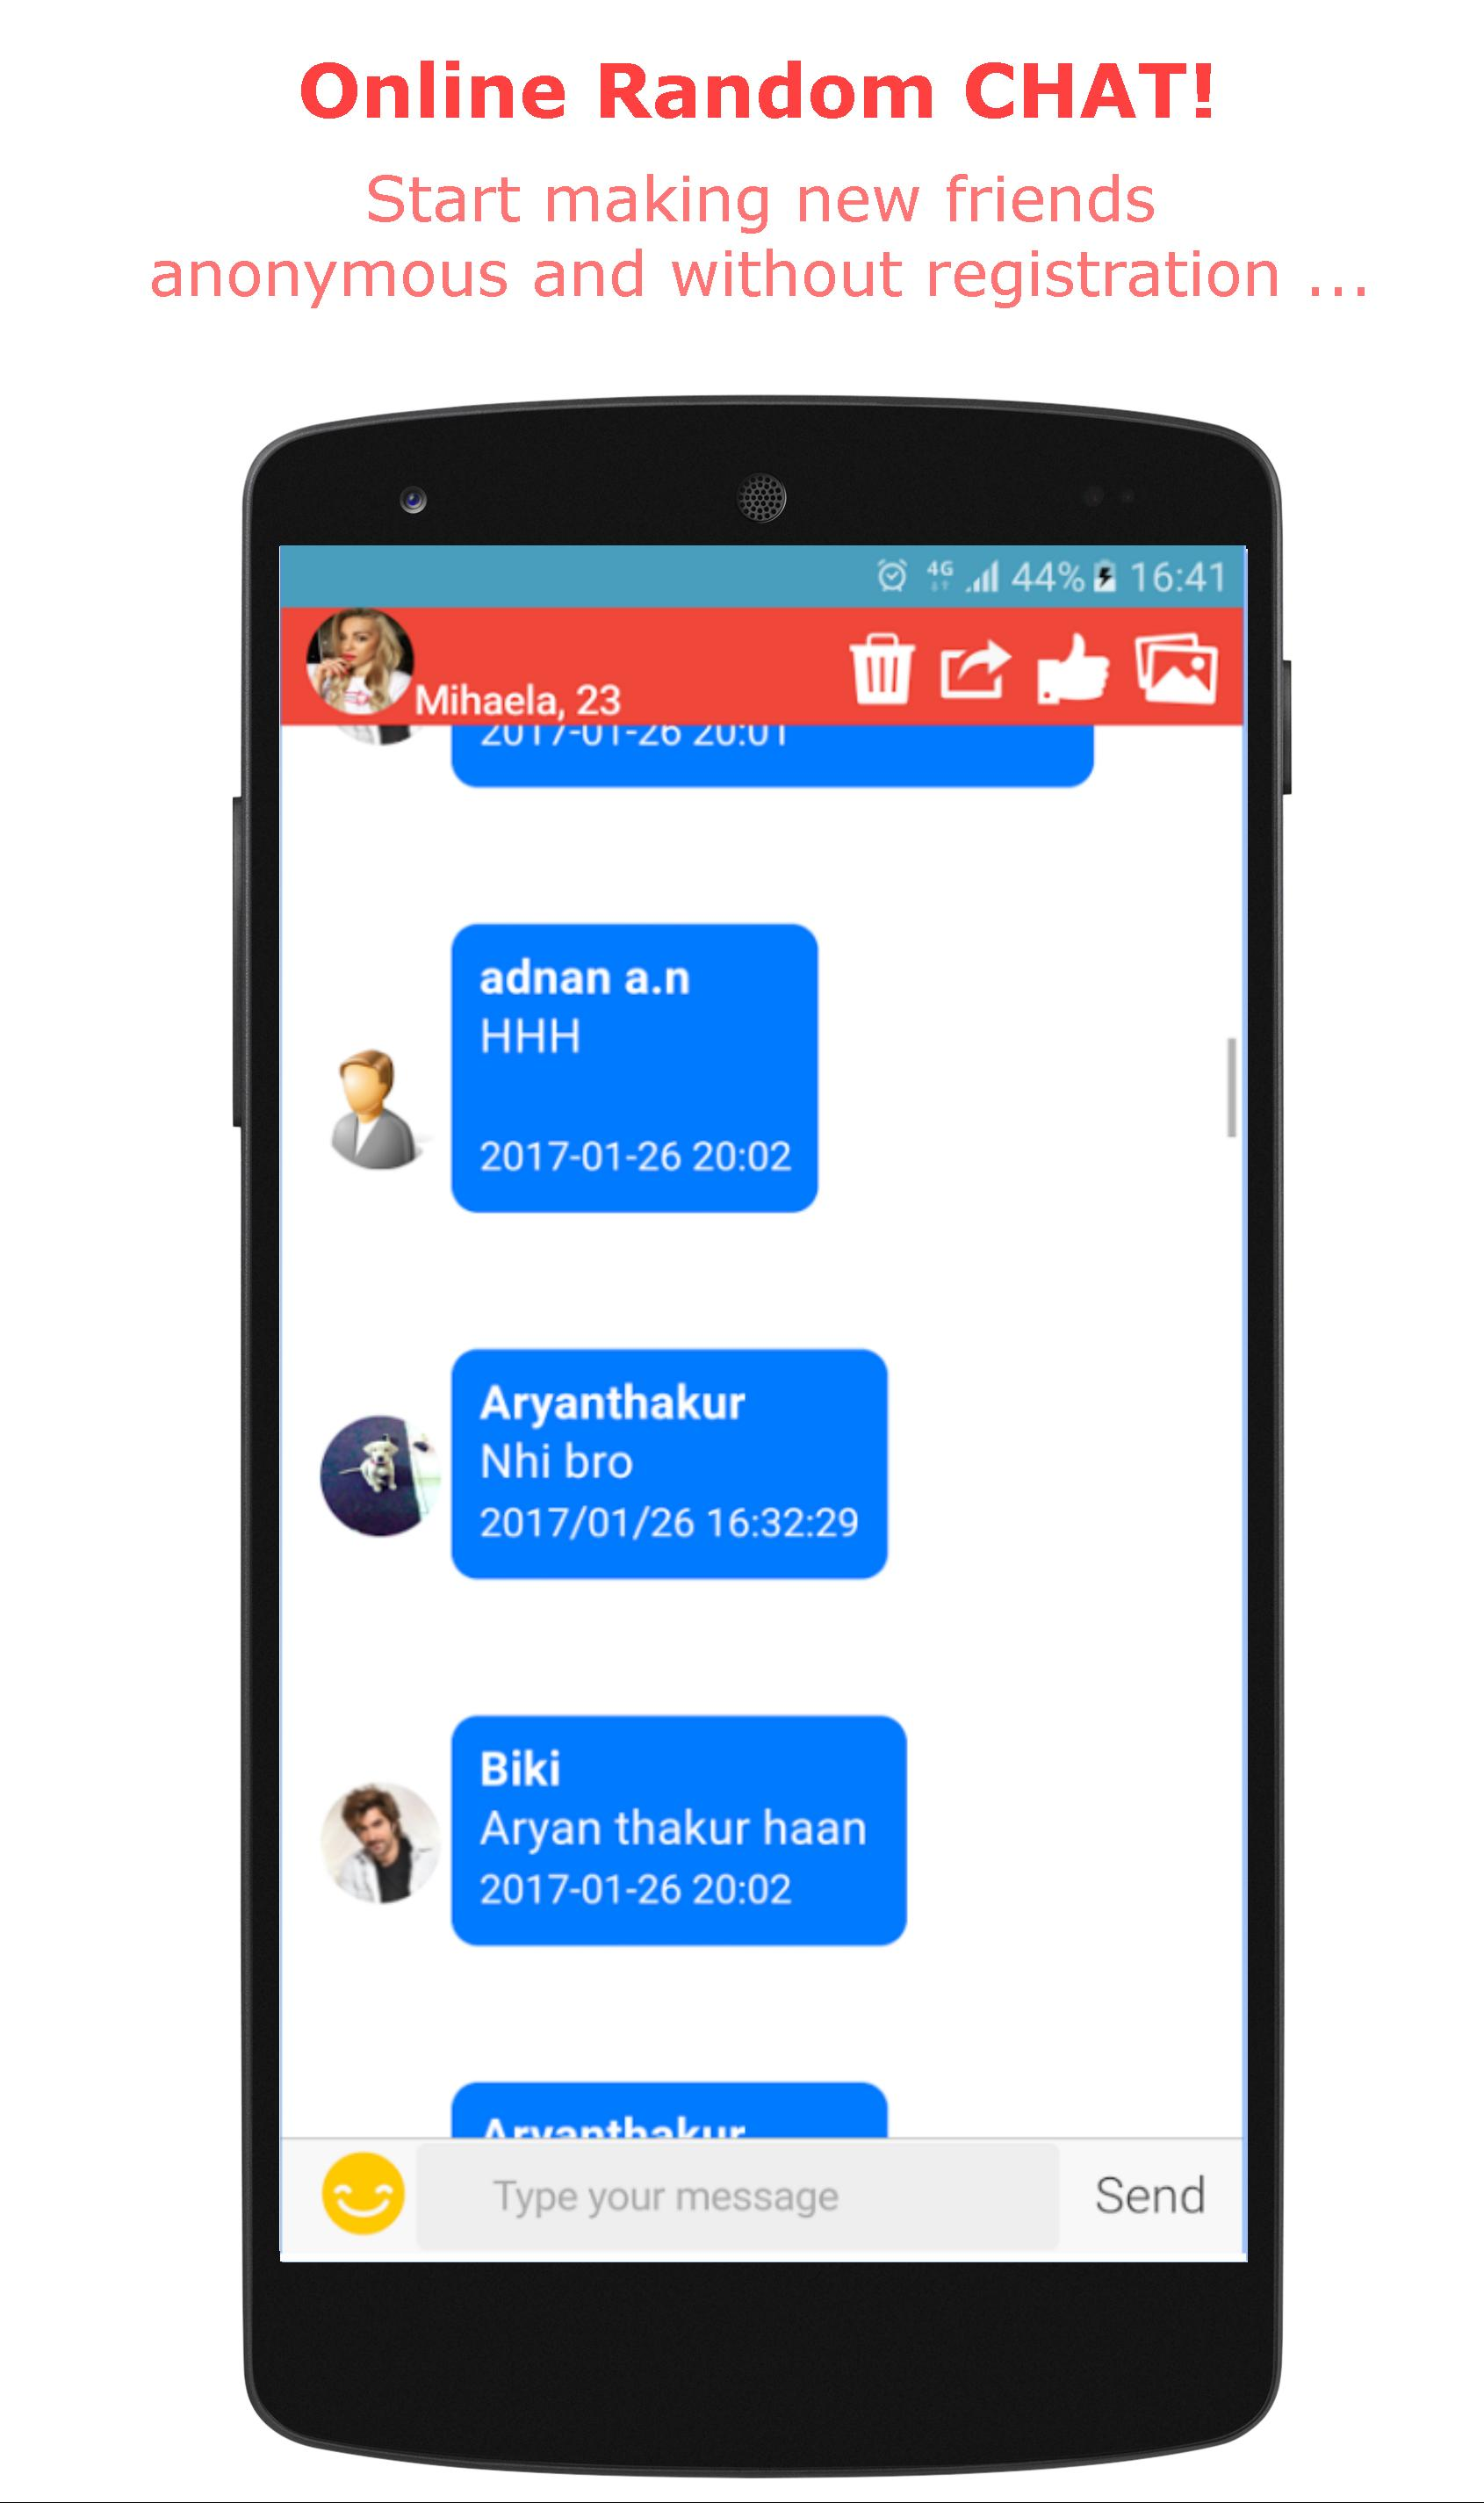 Free Dating App & Love, Chat, Friends for Android - APK Download